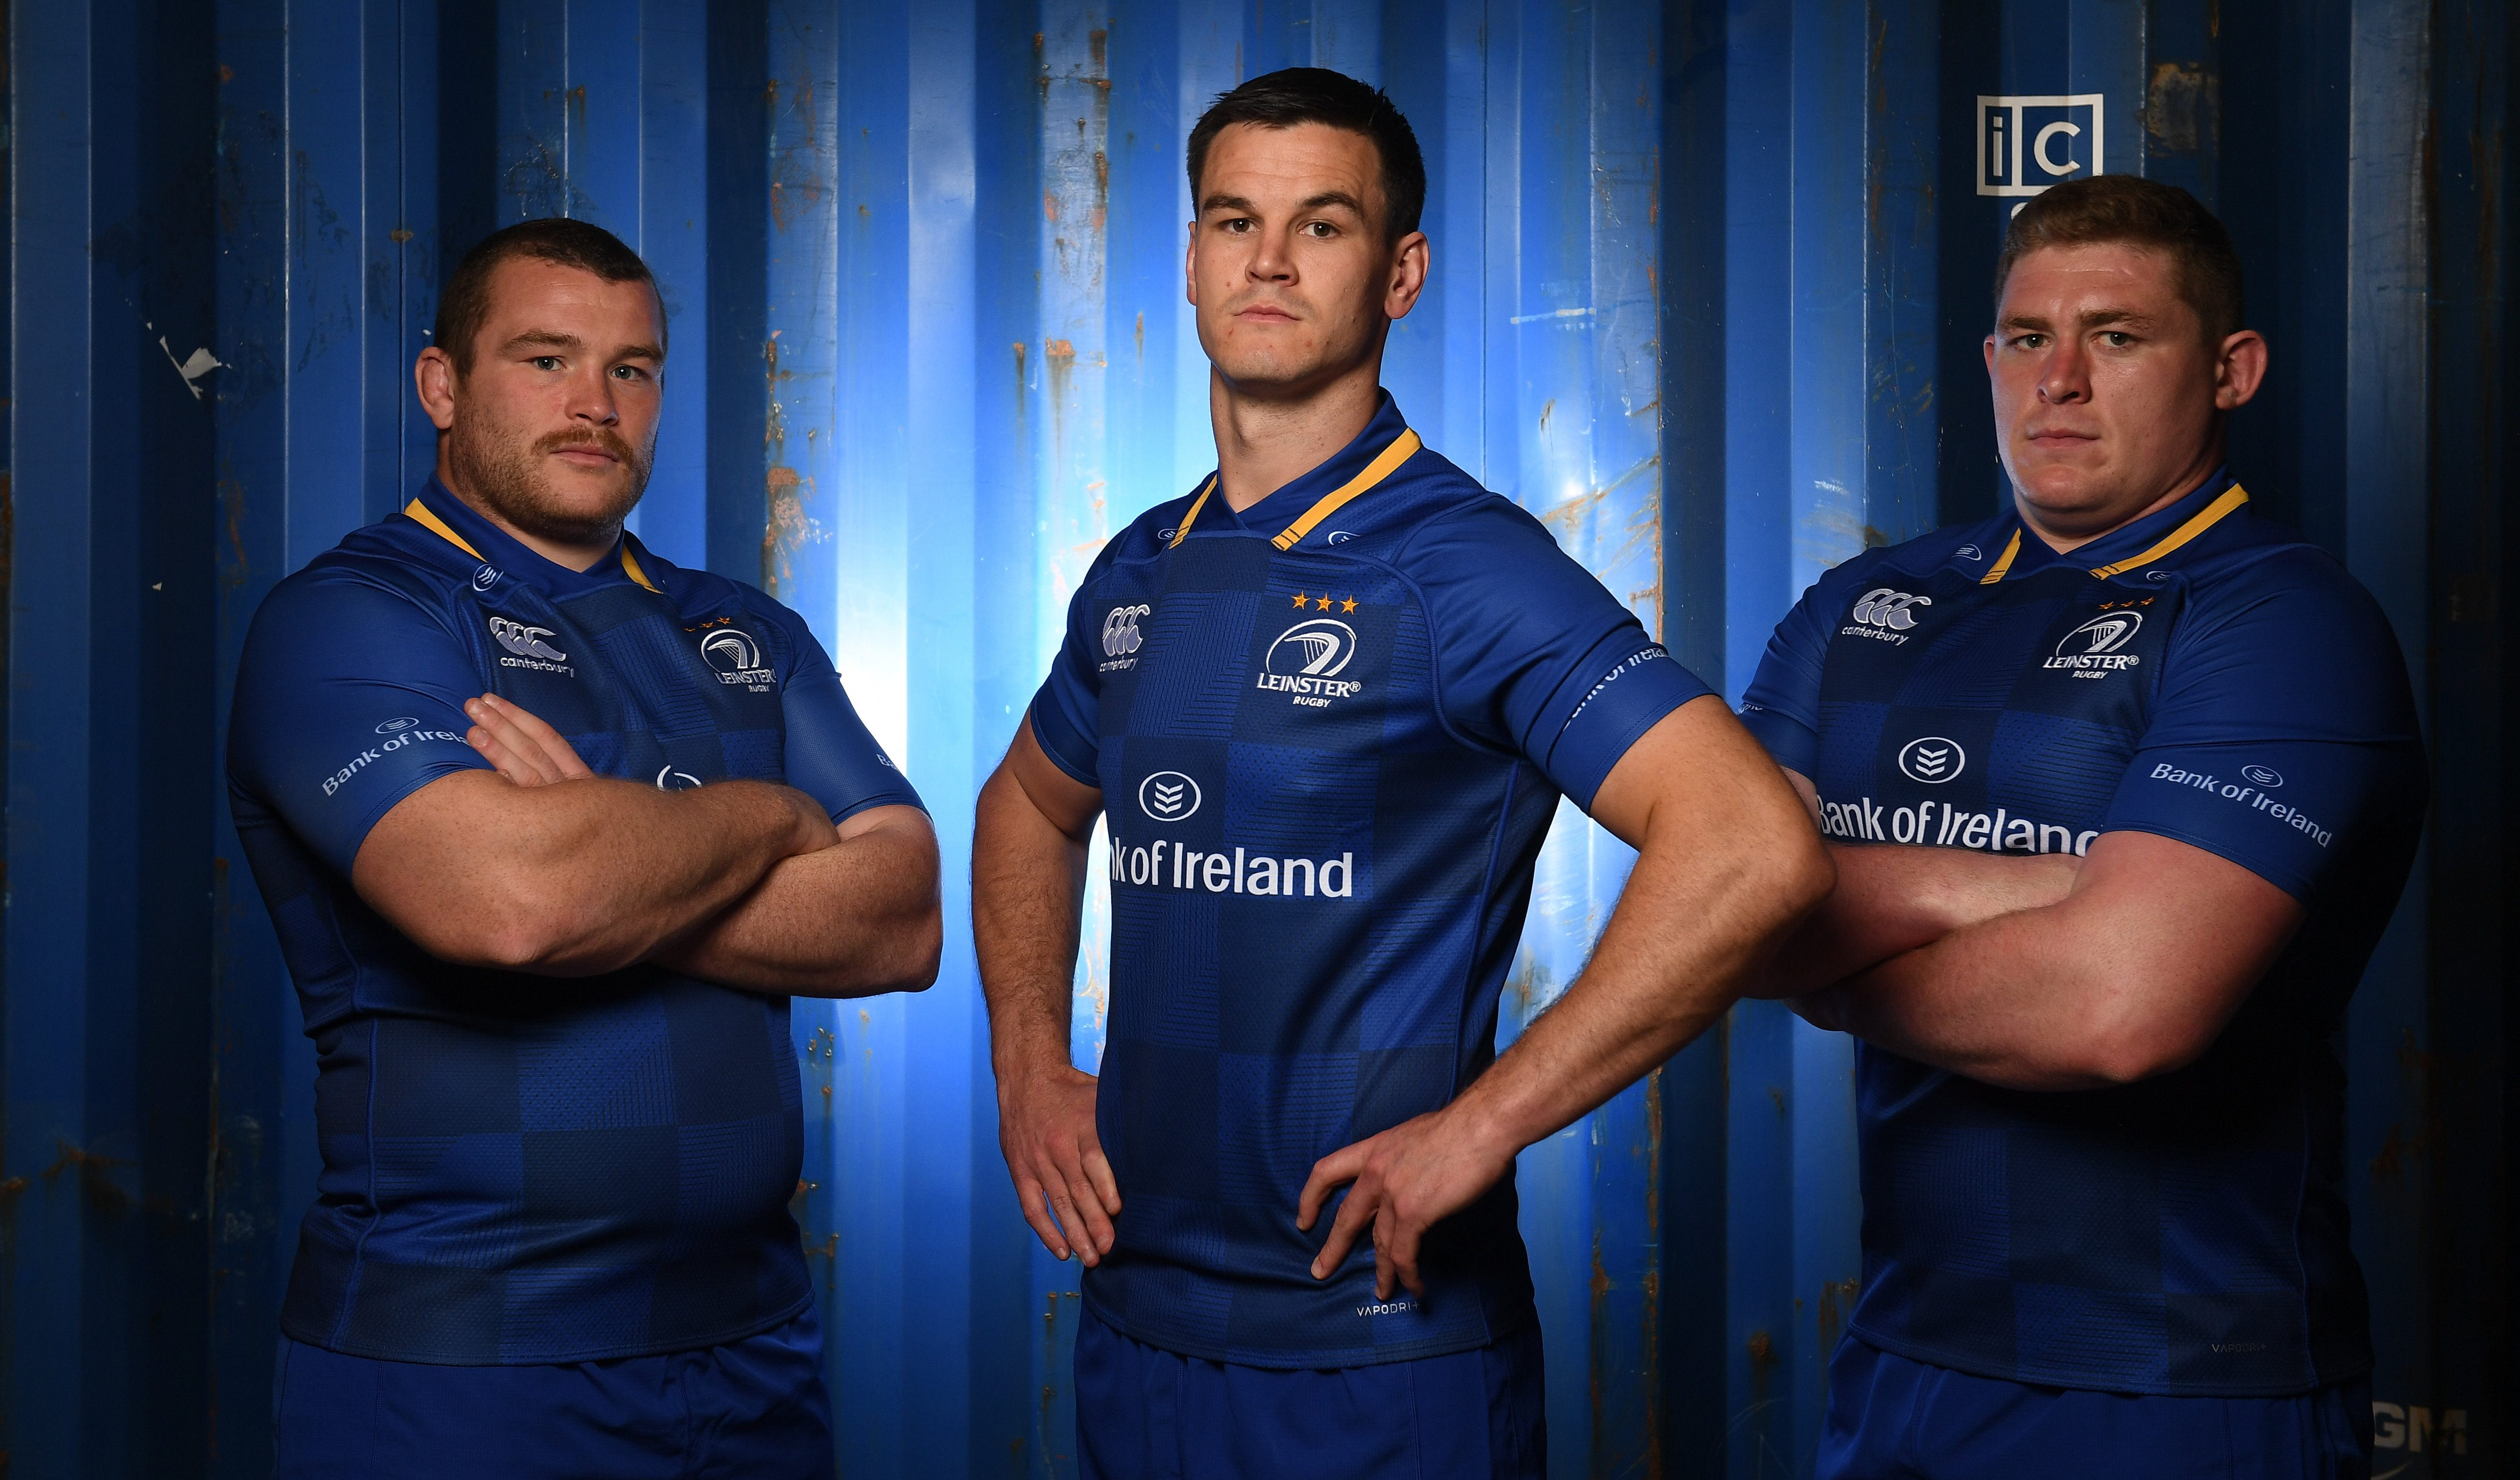 312c378e3 Leinster Rugby | VIDEO: Behind the scenes at the photoshoot for the new home  jersey